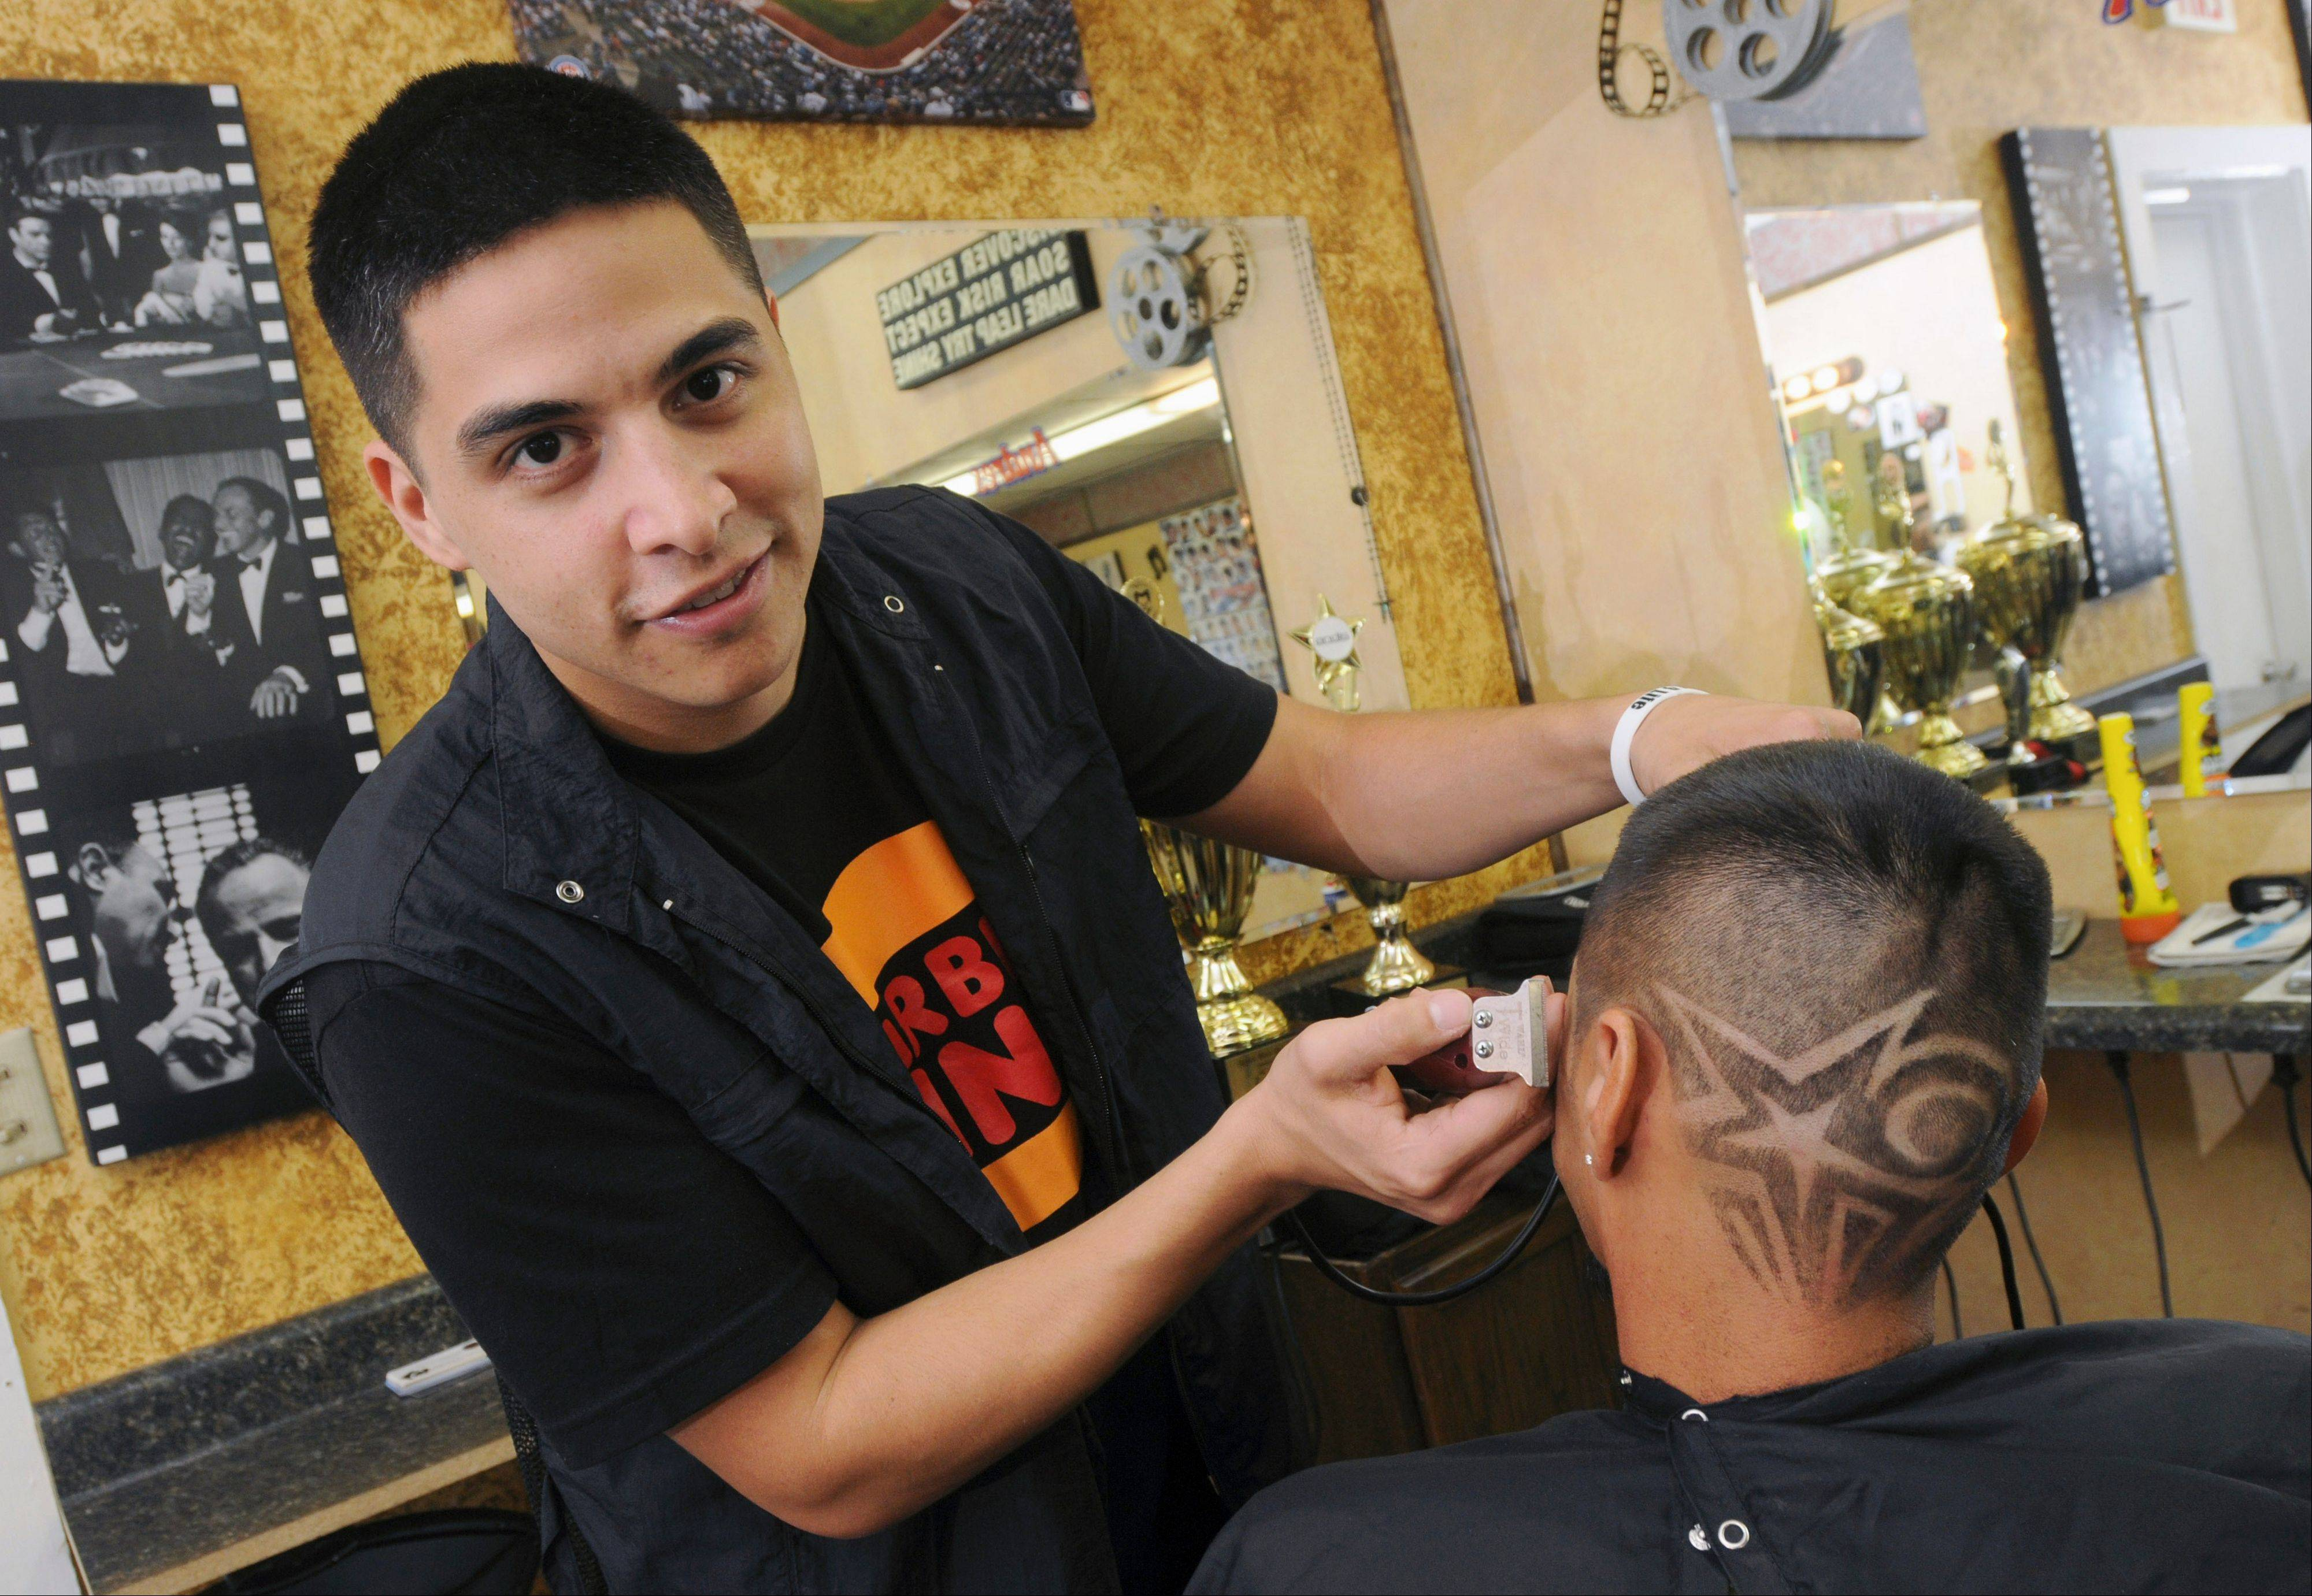 Miguel Rosas, owner of The New Style Barbershop in Moline, works on a customer�s hair design. Over the Labor Day weekend, Rosas won first and second-place awards at the Xotics Hair Battle in Columbus, Ohio. He took first place for the fastest fade and second place for a freestyle competition with color where he cropped a design of Yosemite Sam into his subject�s skull.